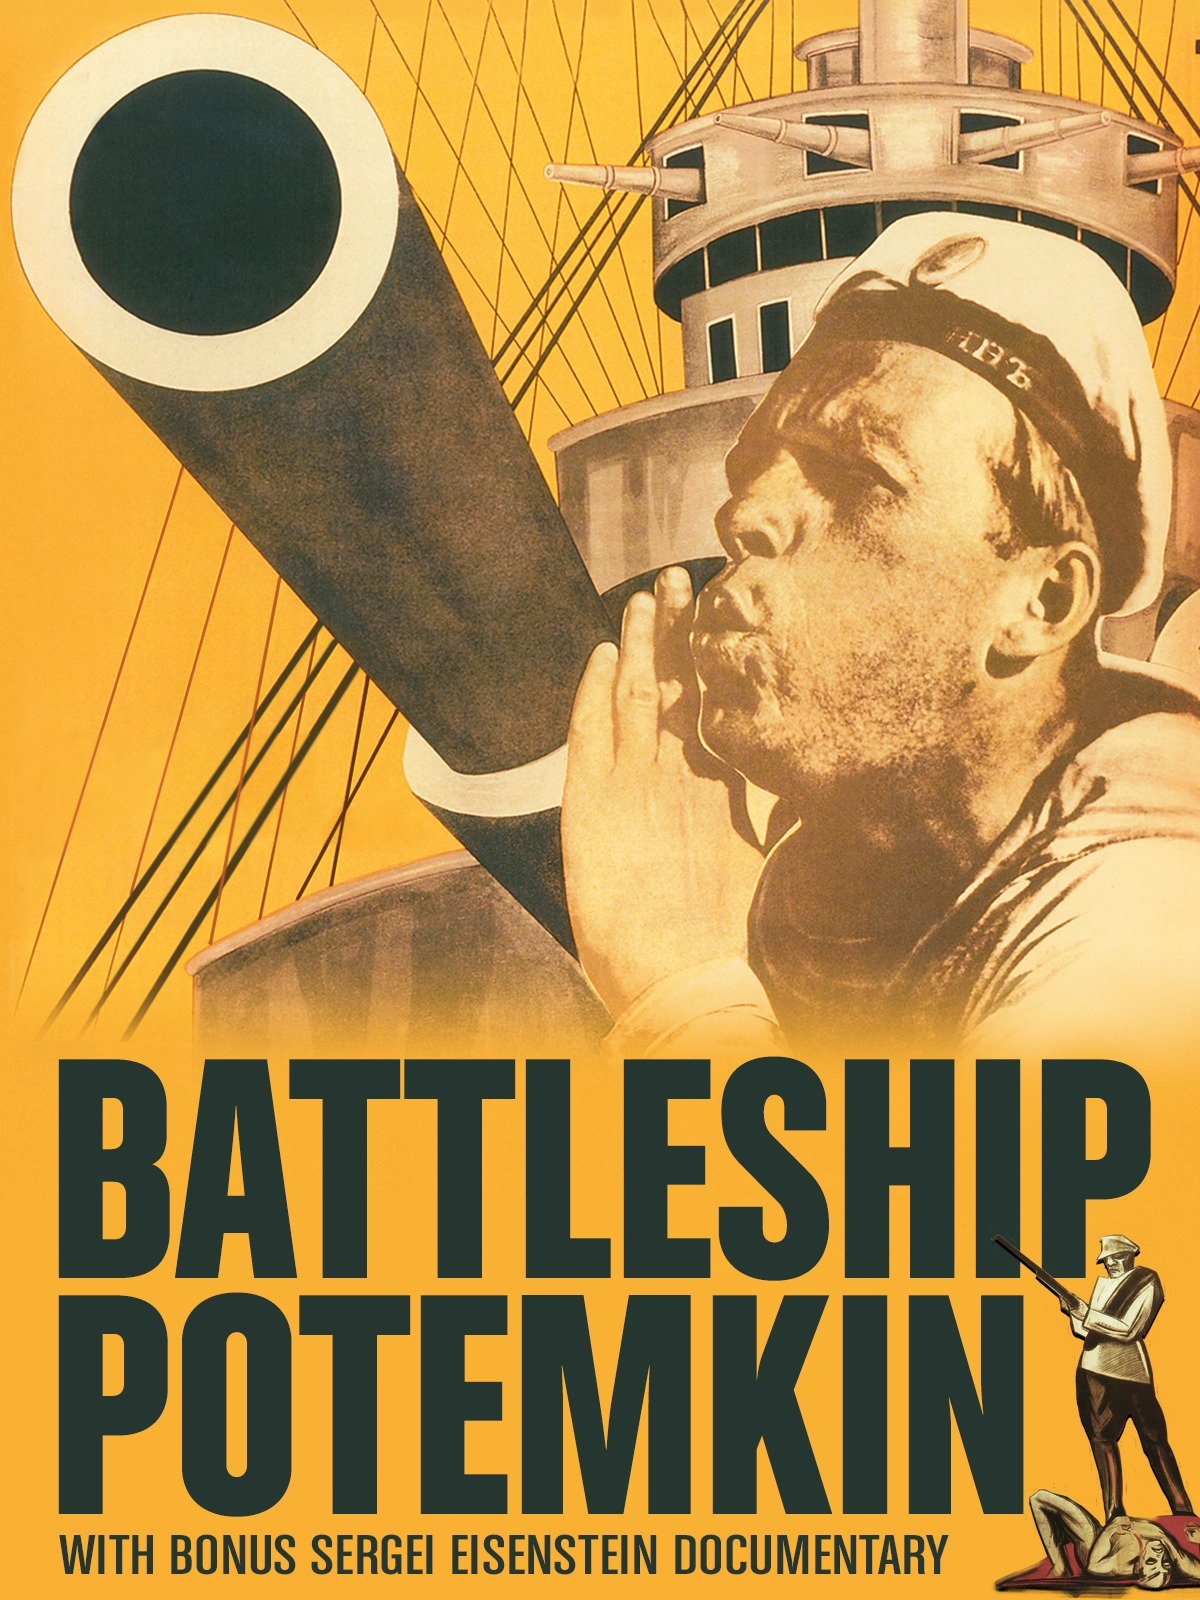 Battleship Potemkin with Bonus Sergei Eisenstein Documentary